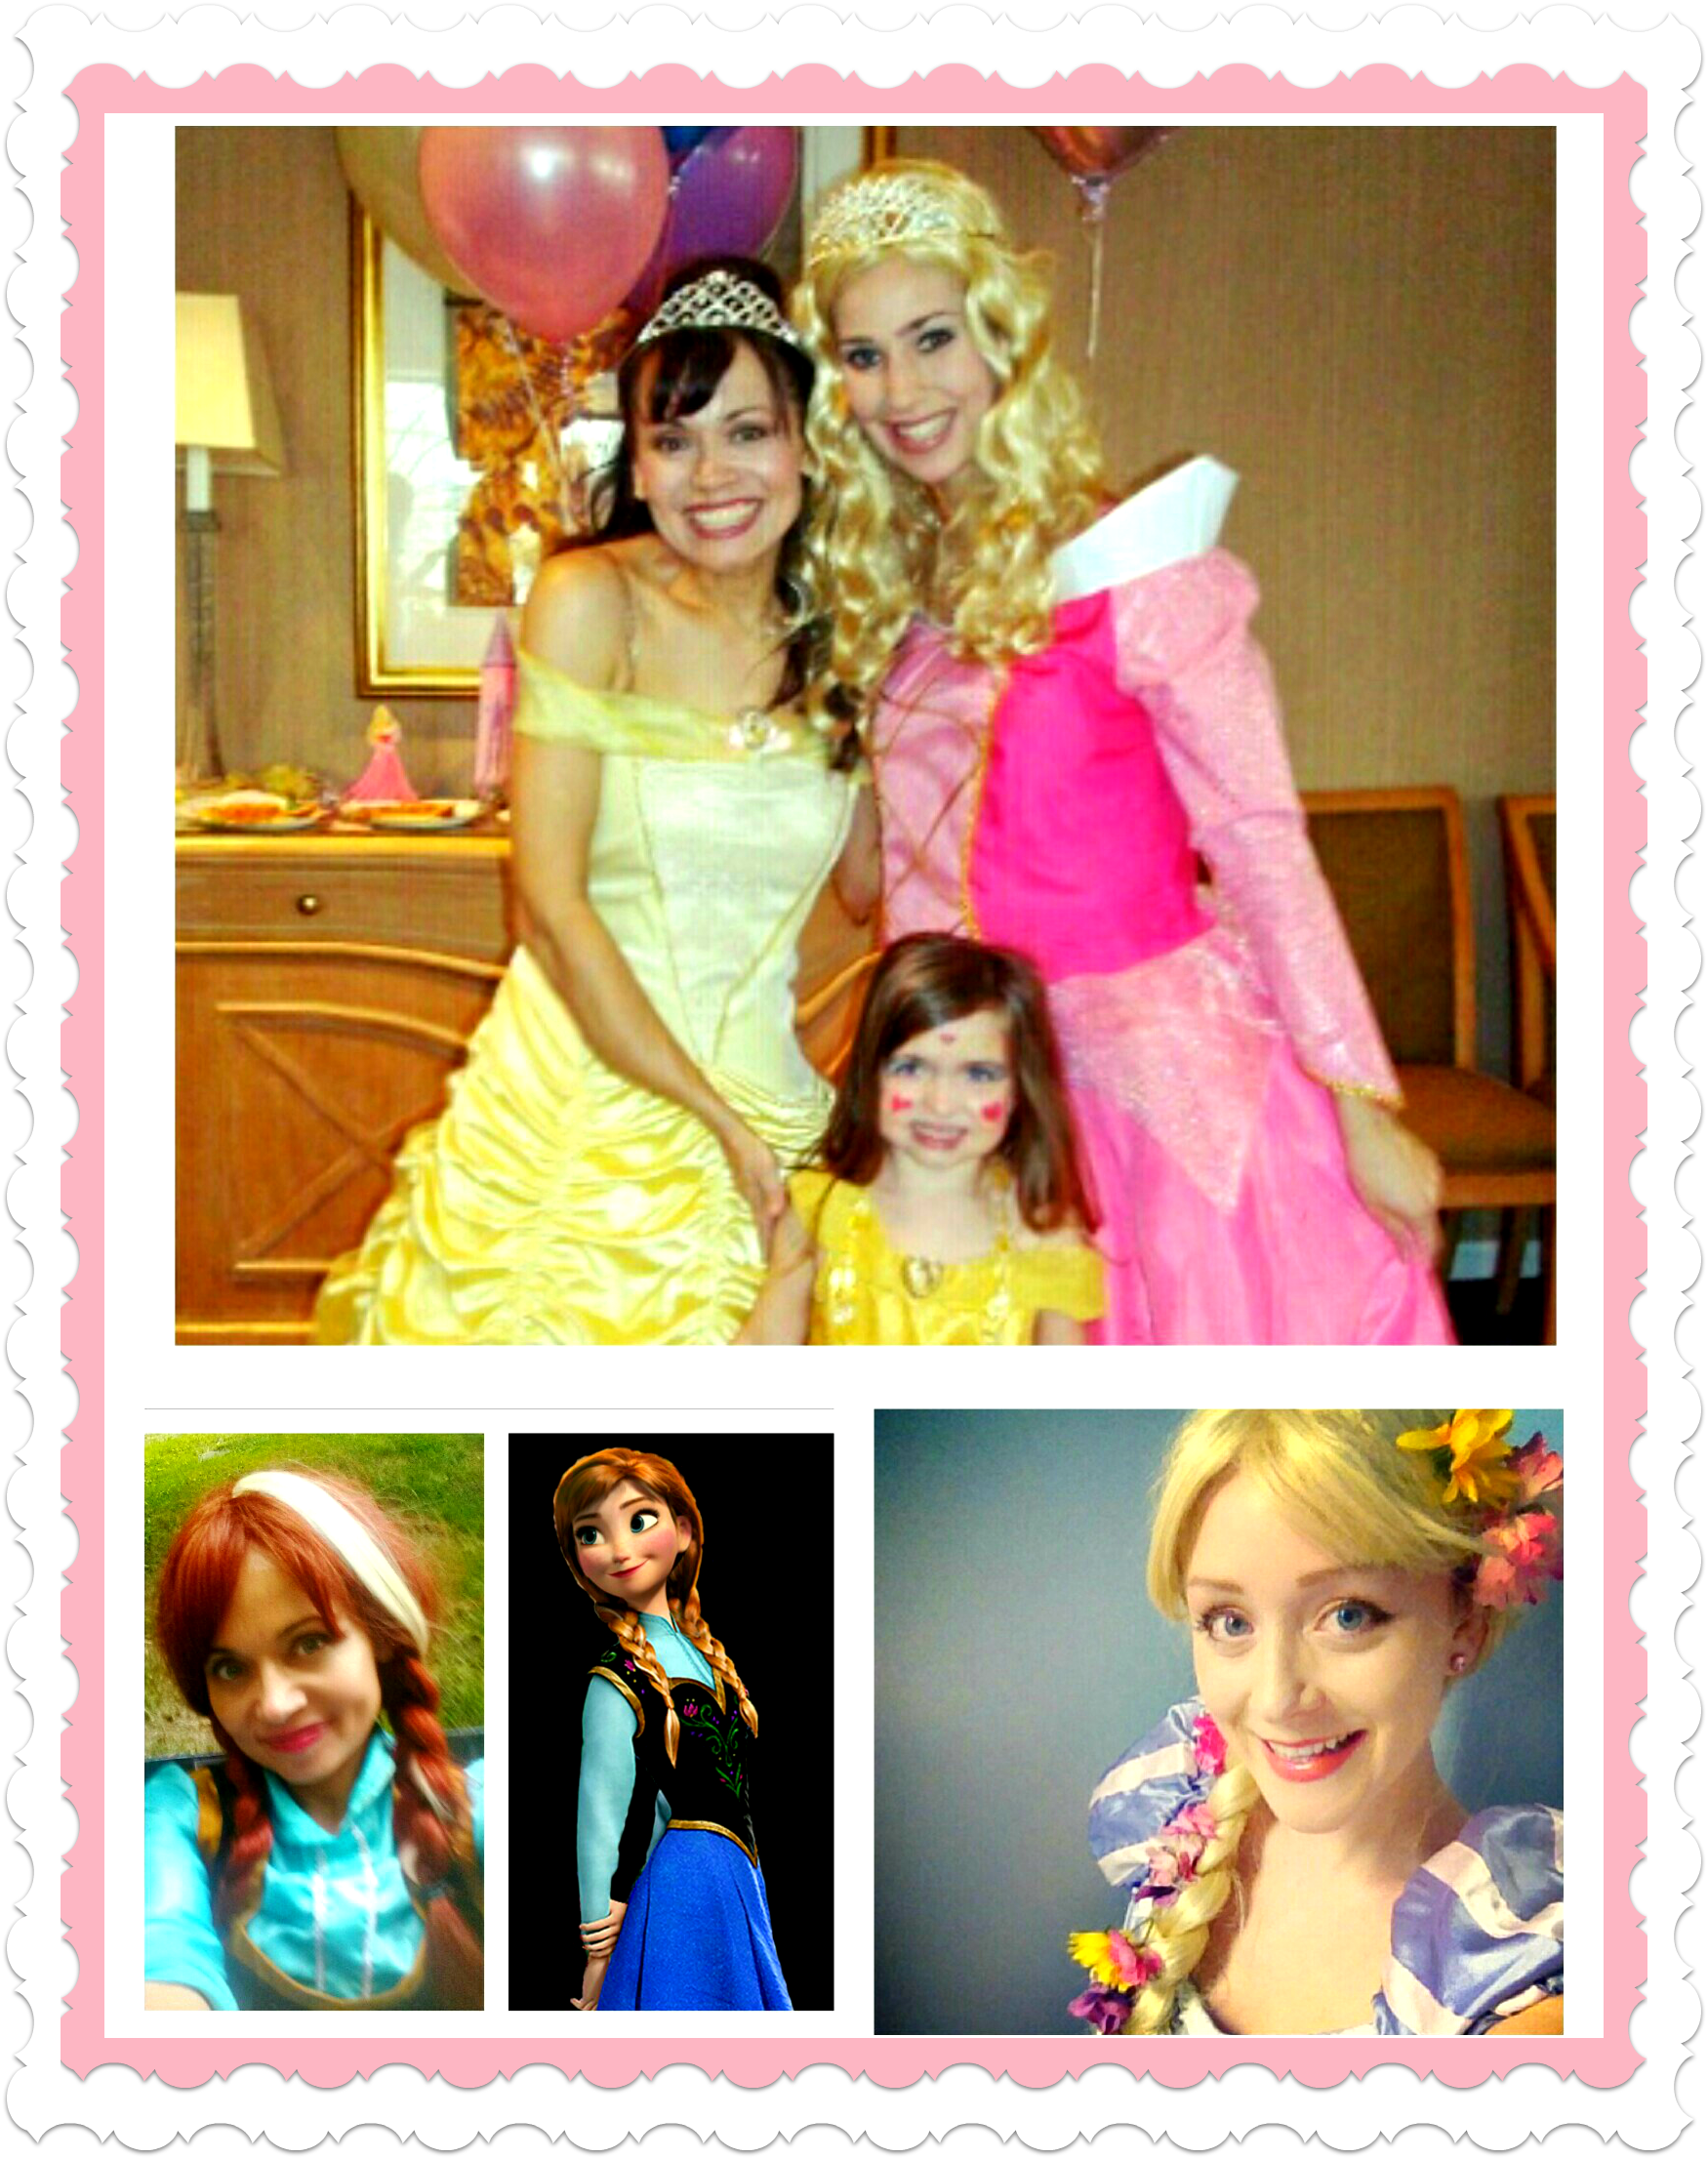 Kids' party face painting, balloons, princesses, Baelle, Rapunzel, Ariel, Seeping Beauty, Elsa, Frozen, NYC parties children